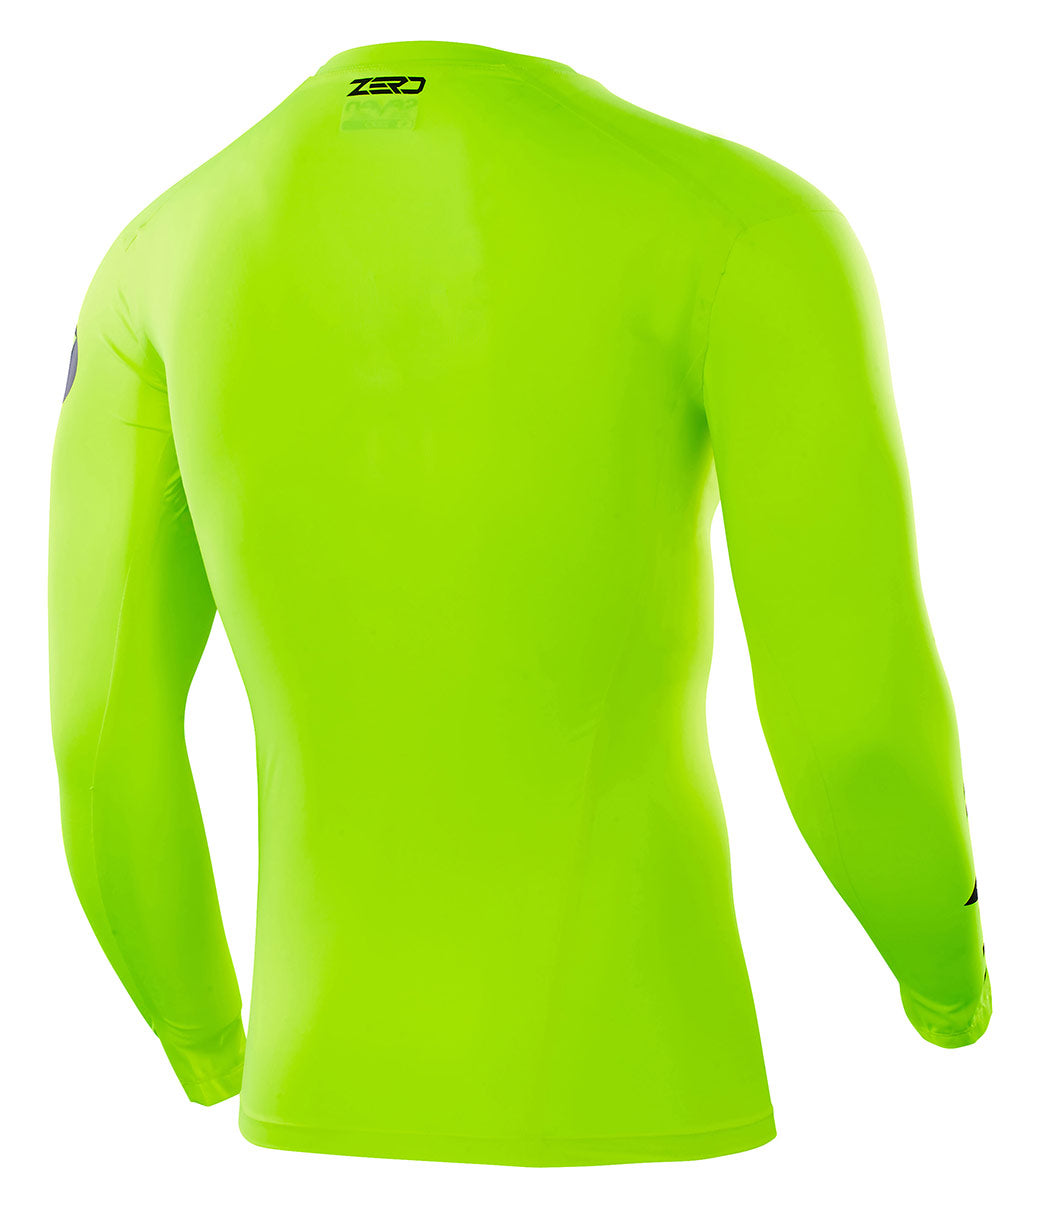 Zero Compression Jersey - Flow Yellow